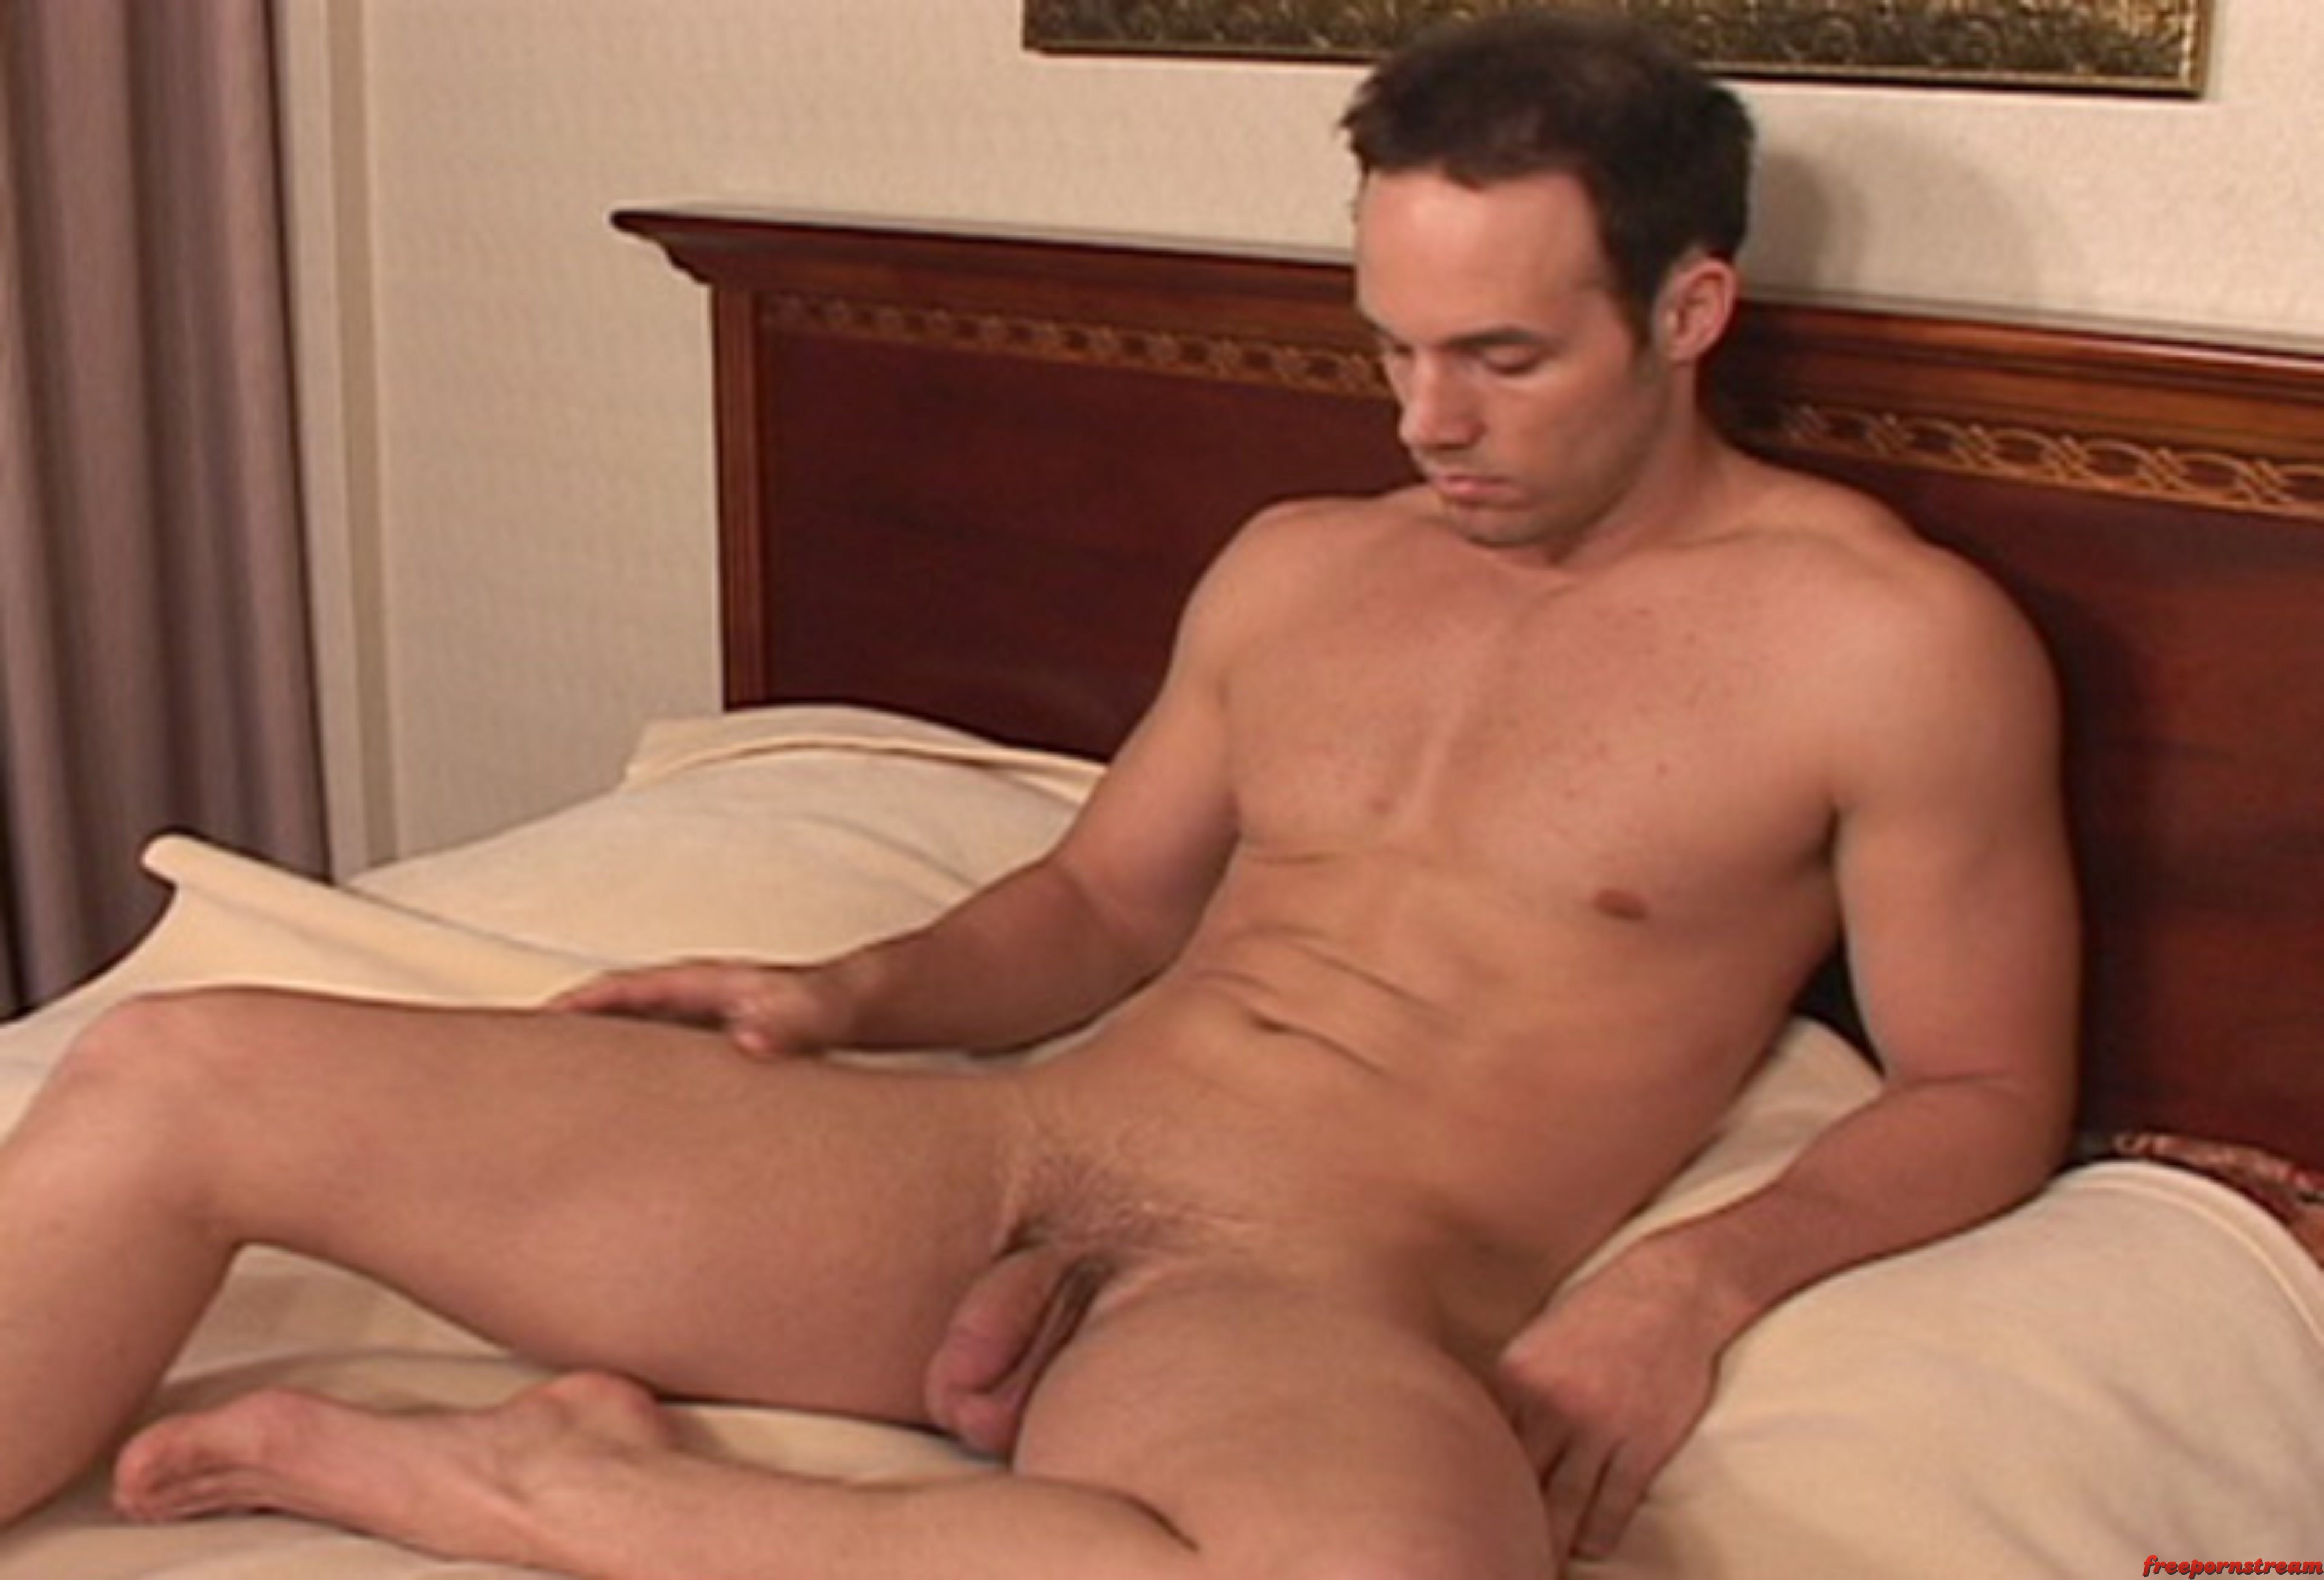 GAY PORN WHY HE WAS LATE FOR WORK